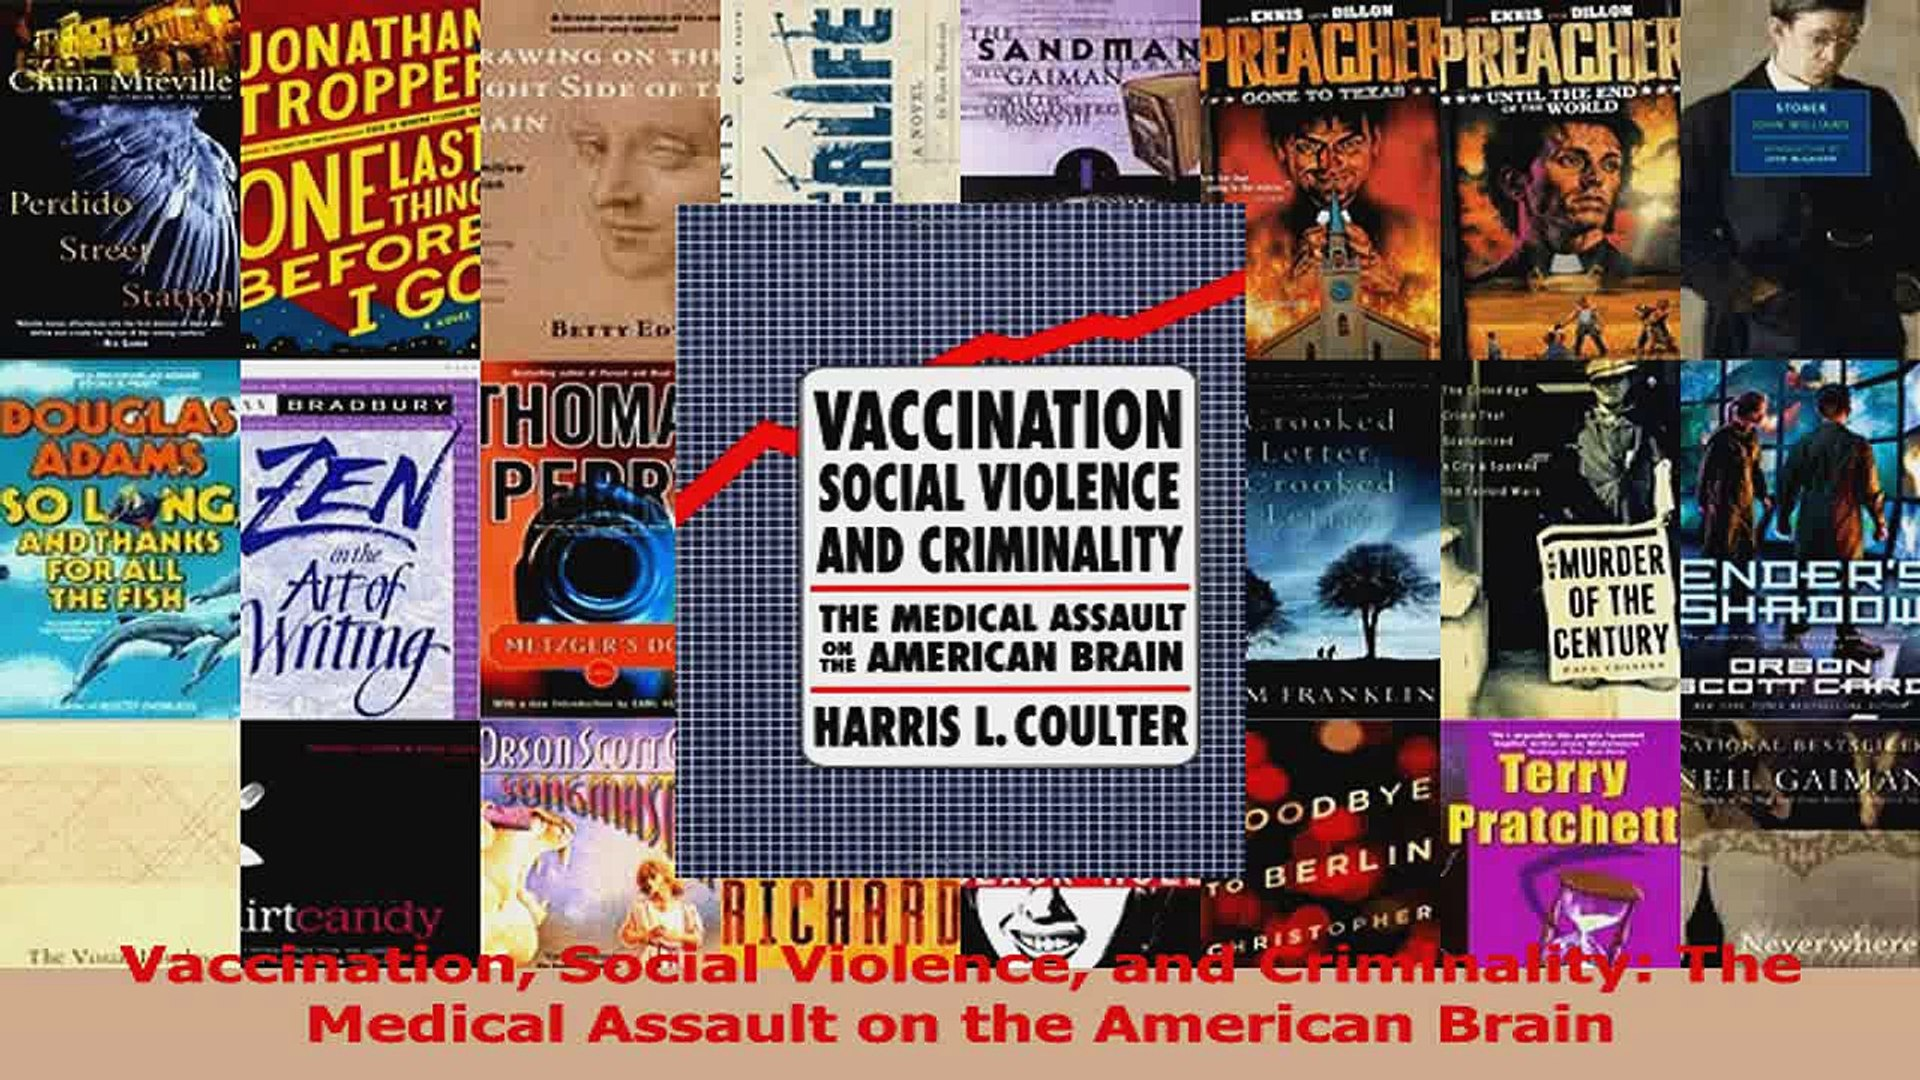 Vaccination Social Violence and Criminality The Medical Assault on the American Brain PDF